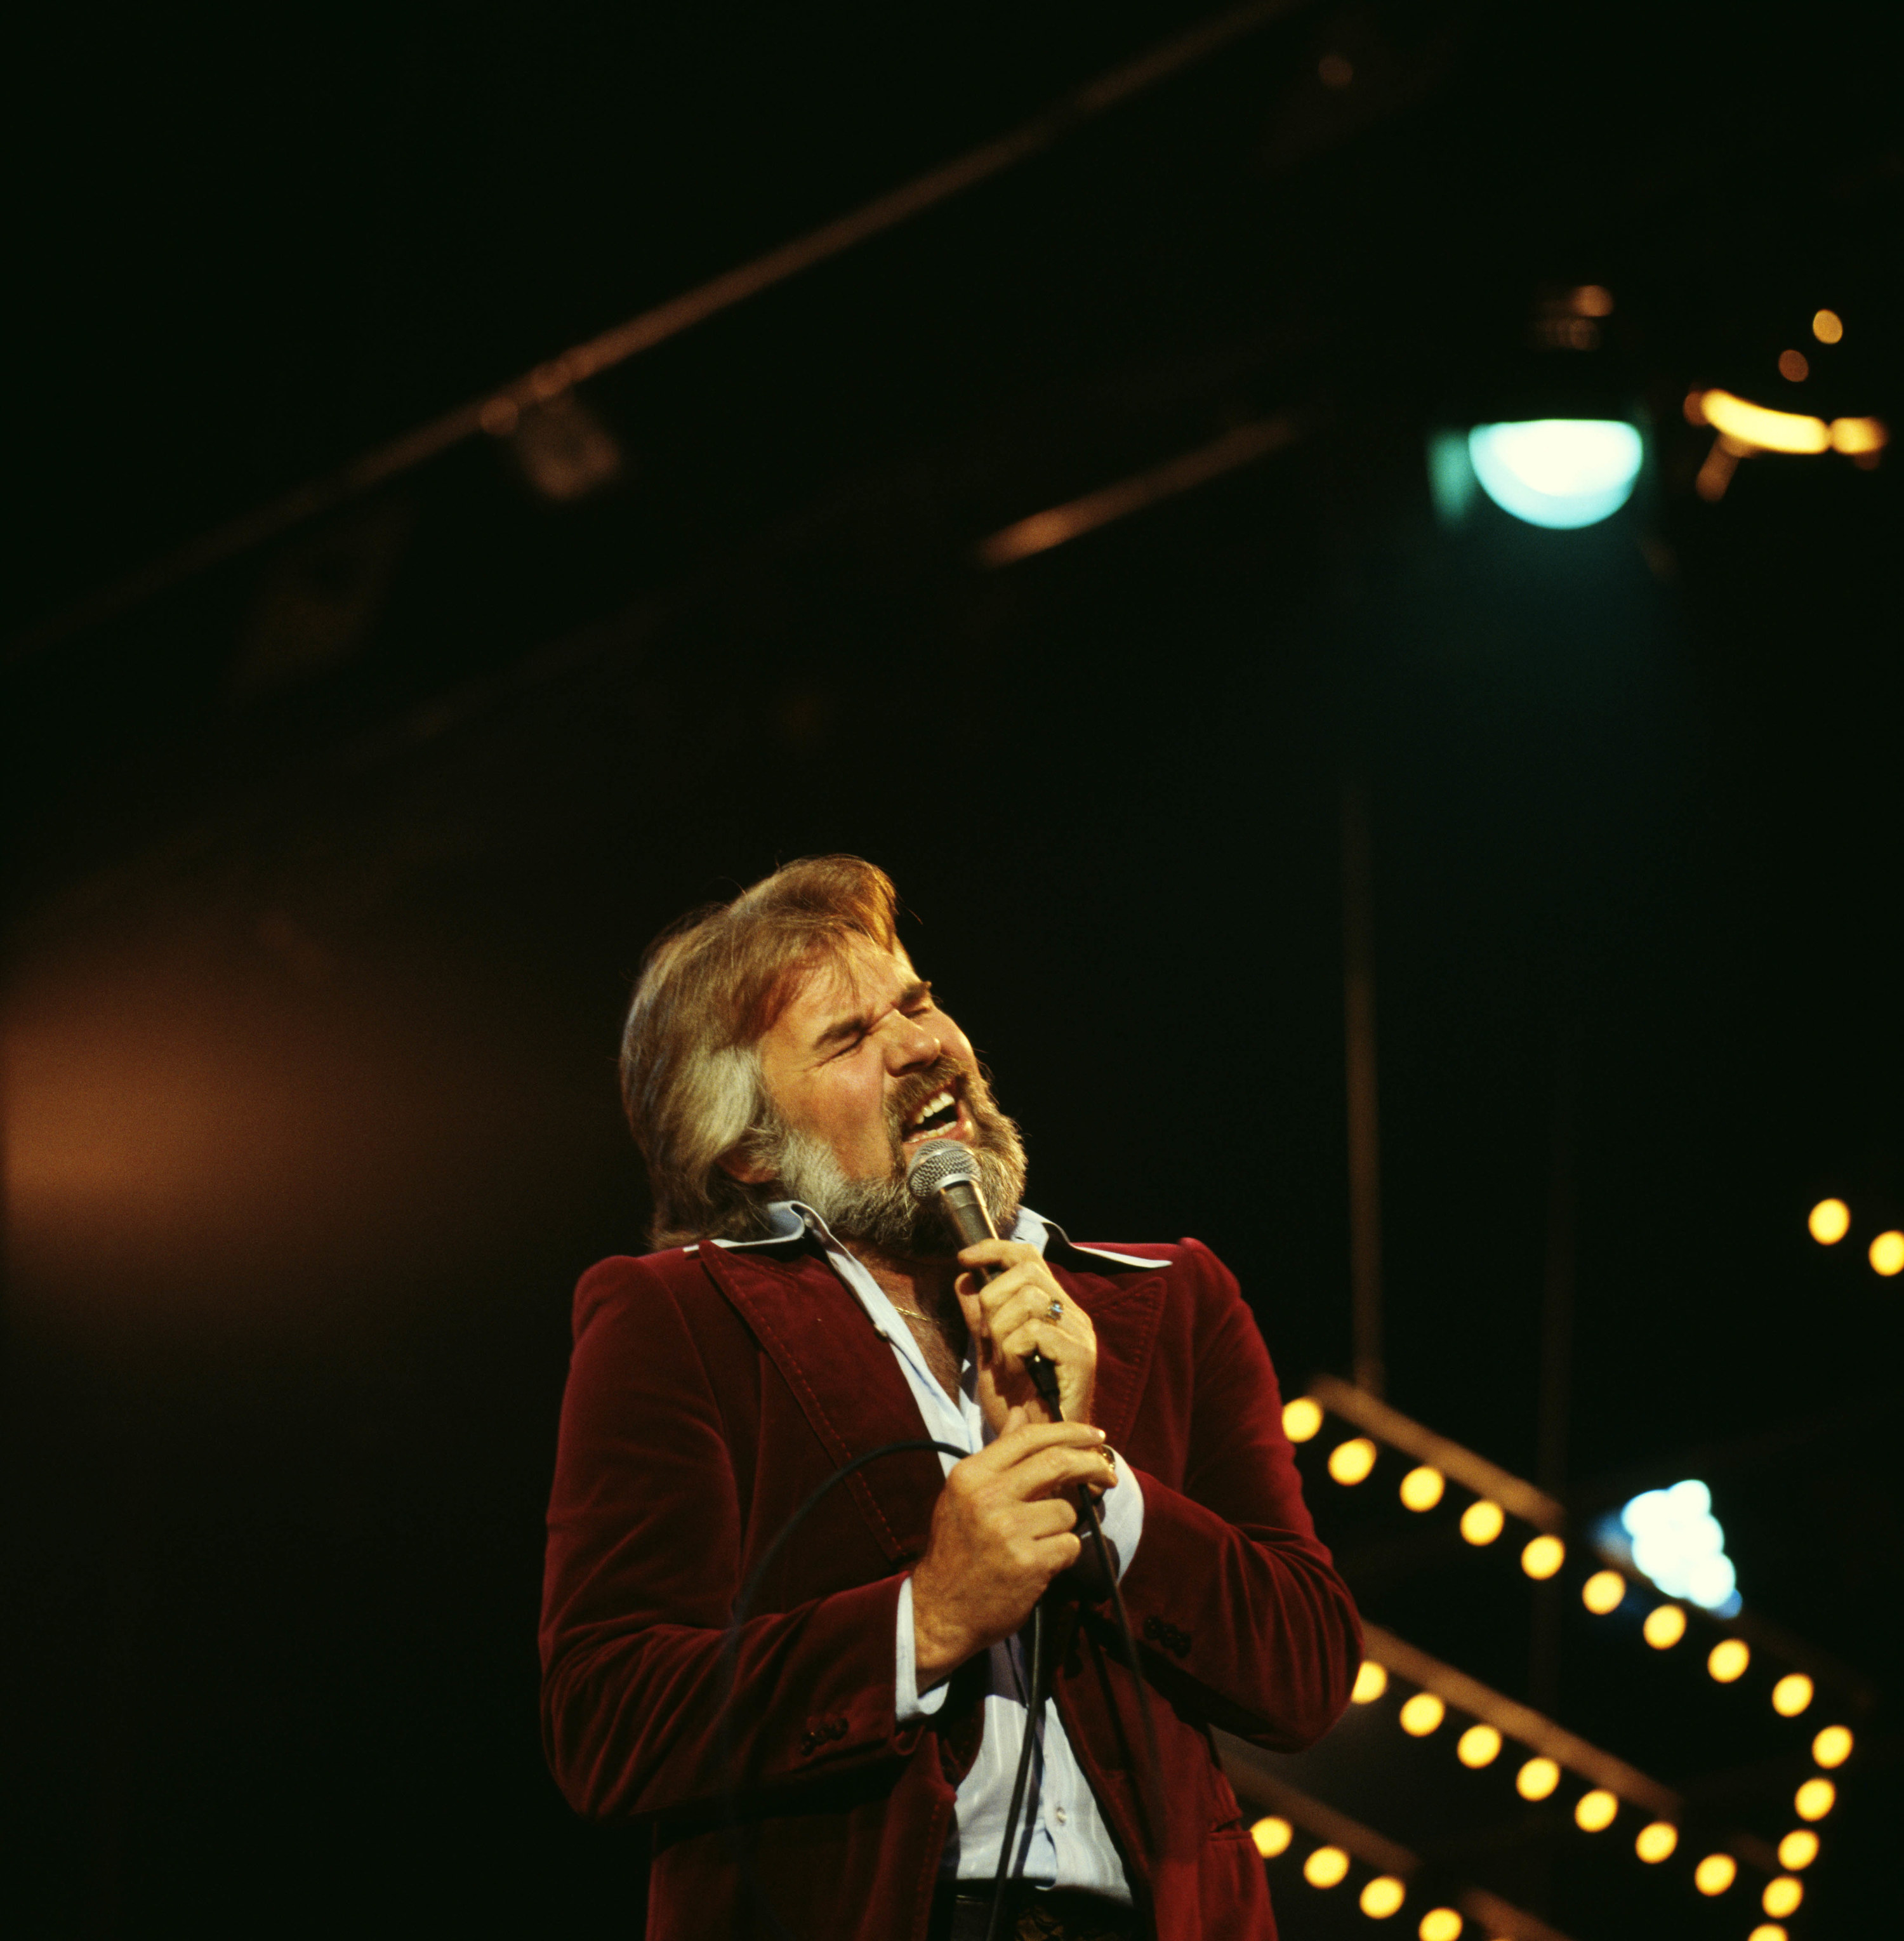 Rogers in a velvet suit singing into a microphone on stage with lights behind him